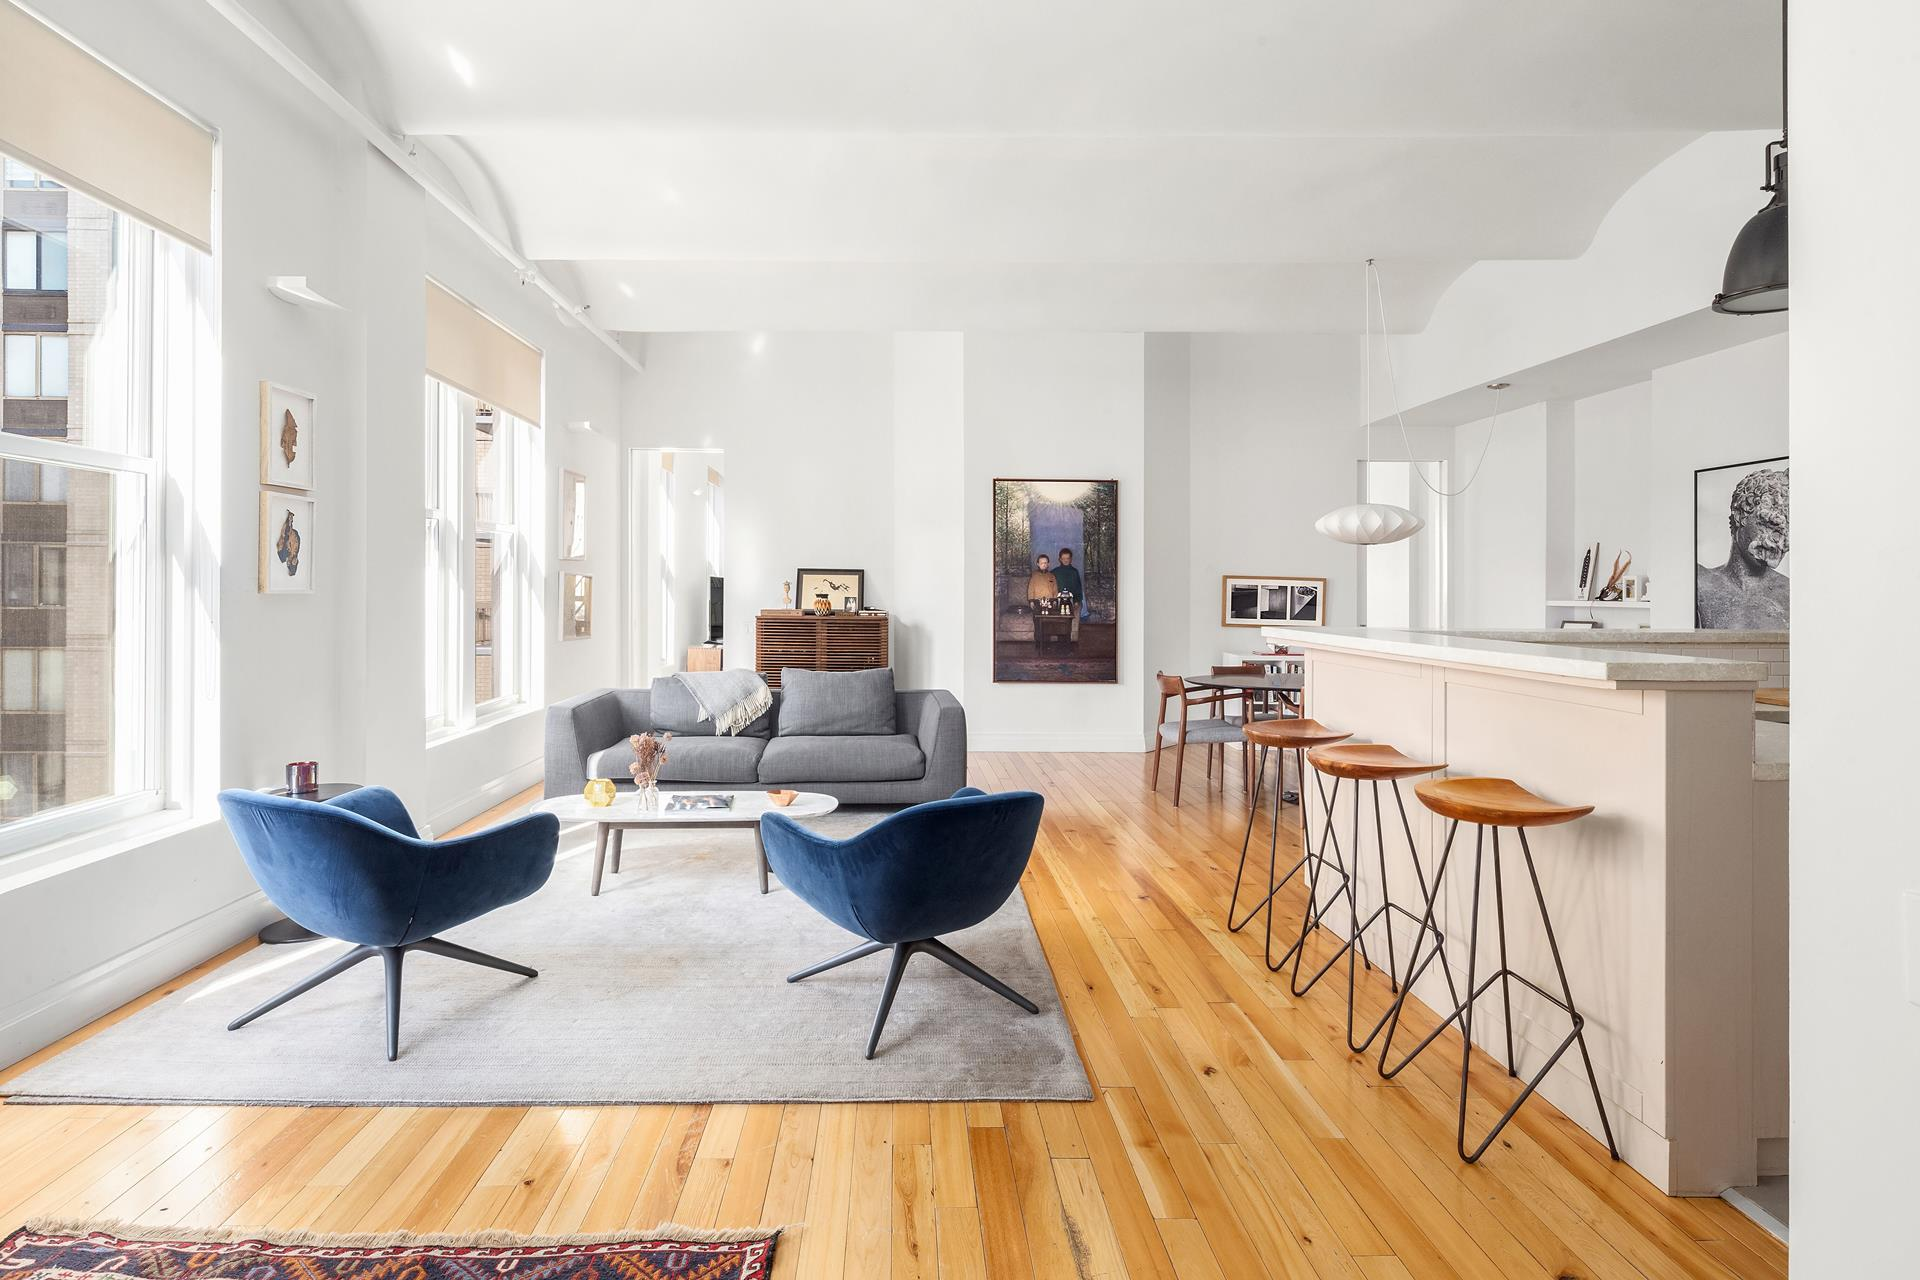 Rarely available, this light-filled 2000 SF beautiful loft with 11' vaulted ceilings and attractive reclaimed elm floorings is situated on the prettiest tree-lined block in the Flat Iron district.. A unique full floor 3 bedrooms and 3.5 baths boasts superb   views, from three exposures, of some of Manhattan's venerated architecture. The generously proportioned great room offers ample space for dining and lounging and has stunning sunset views and it adjoins a spacious open kitchen with stainless steel appliances.   The oversized master bedroom suite with library and sitting area overlooking a planted garden and includes two large walk-in closets and a spacious en suite bath with separate tub and shower. Facing north are two smaller bedrooms with en suite bathrooms and   views of MetLife Clock Tower and Empire State Building. The apartment also has an over-sized laundry room two additional closets and a powder room. The building offers video security and the super is onsite weekdays. Neighborhood attractions include Madison   Square Park, Eataly, Union Square Farmers Market and many of the best restaurants in the city. . Ultra convenient to transportation. This mint, fully renovated home is not to be missed!